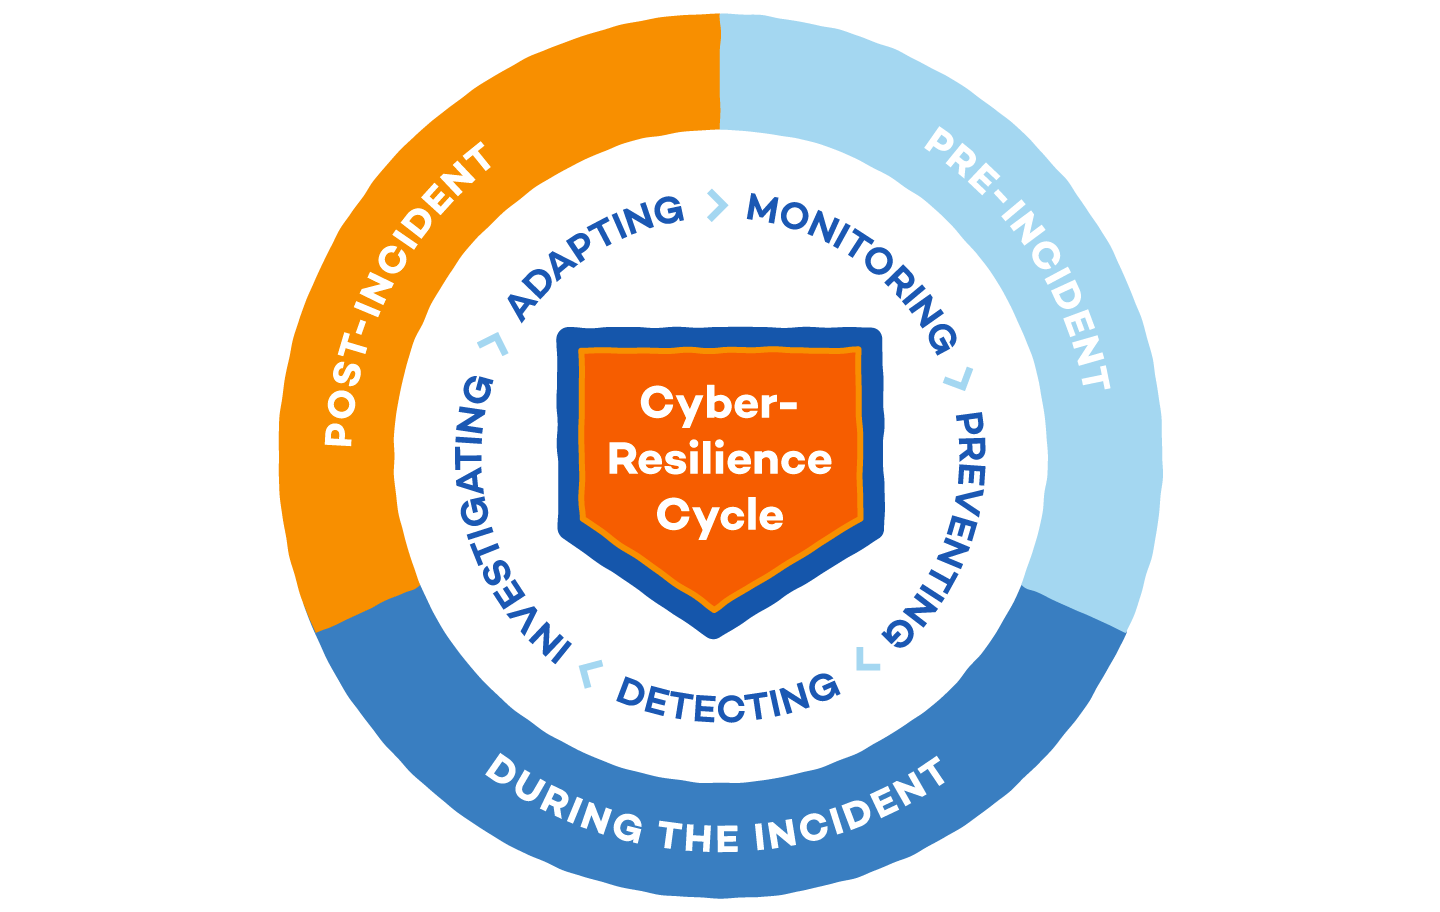 cyber-resilience-cycle